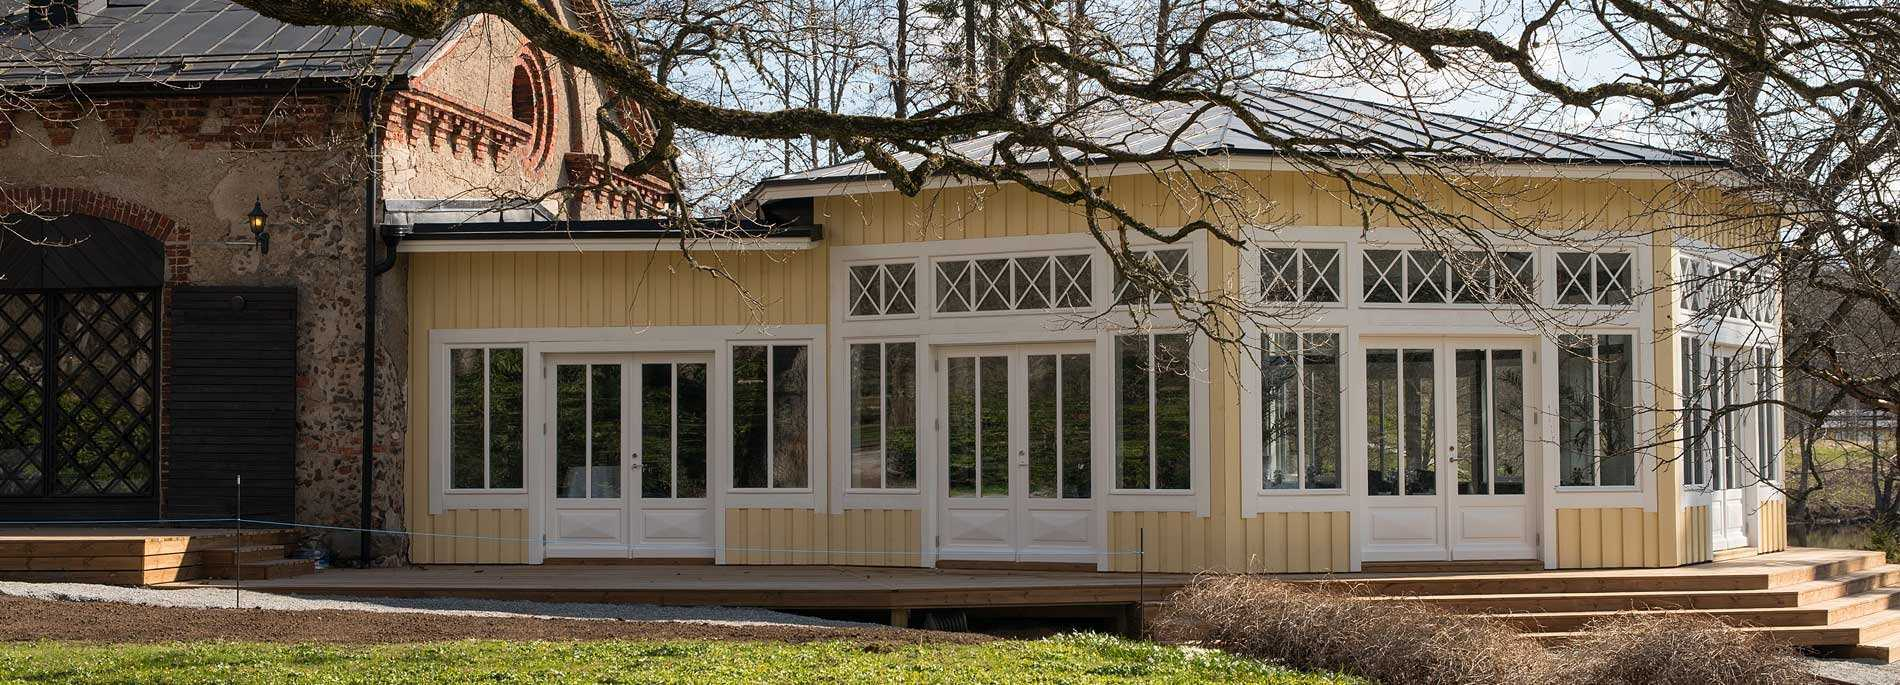 Svartå Manor's new pavilion opened in May 2017. The pavilion has room for 110 guests and can be used for weddings, parties and conferences.